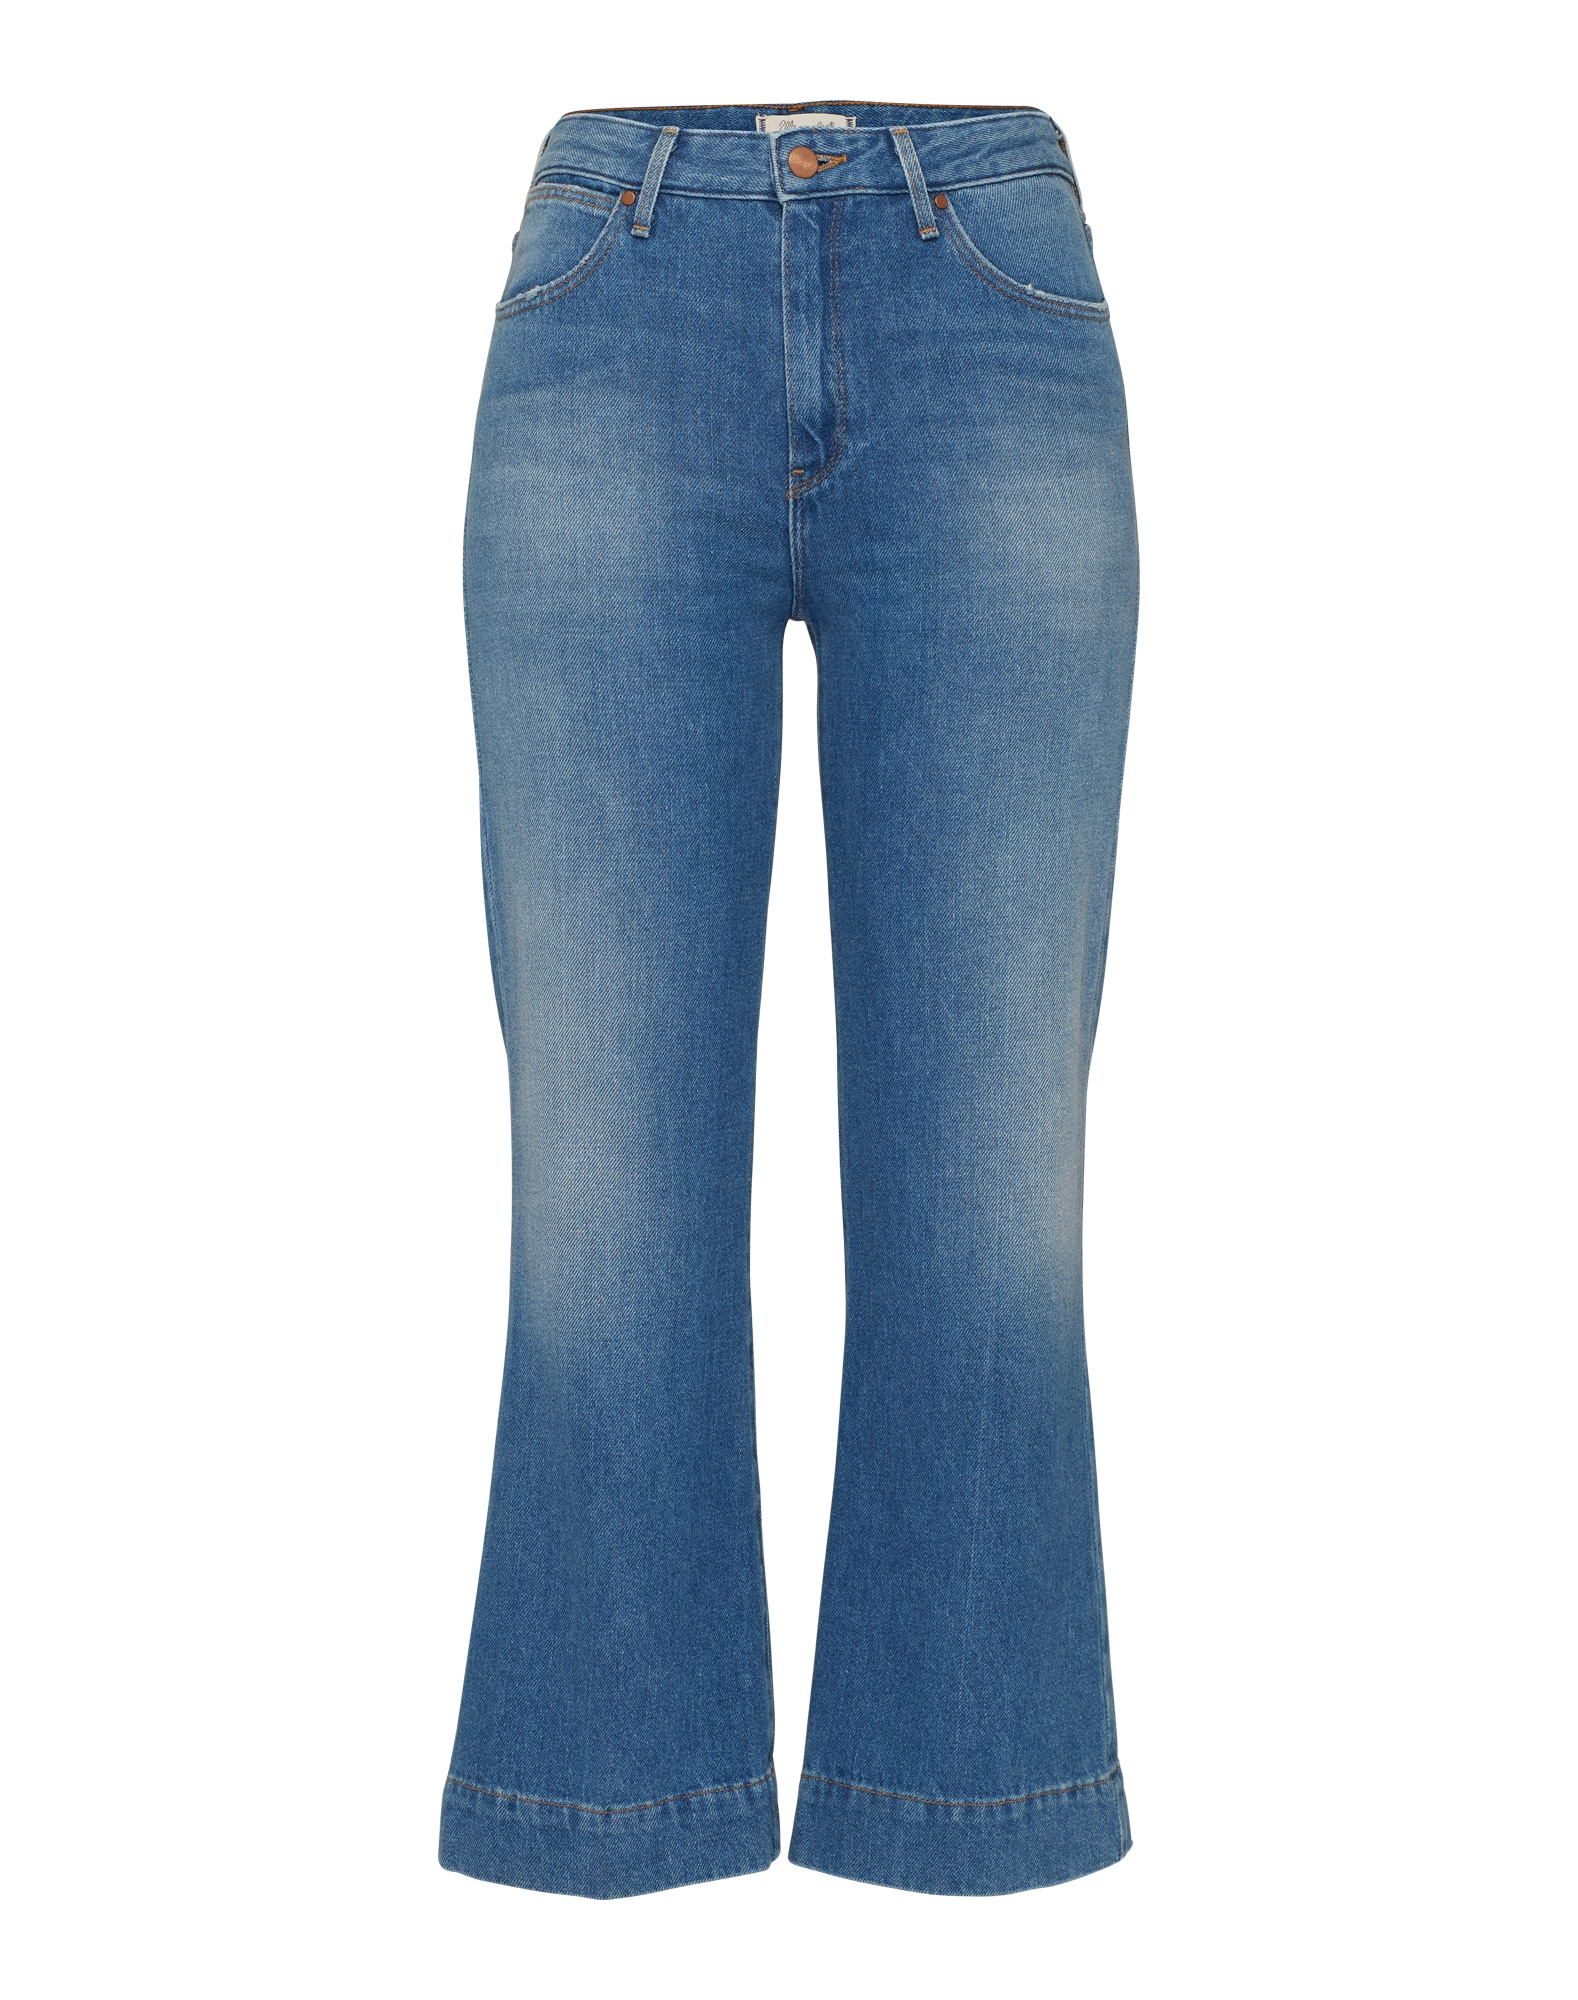 WRANGLER Dames Jeans Cropped Flare blue denim